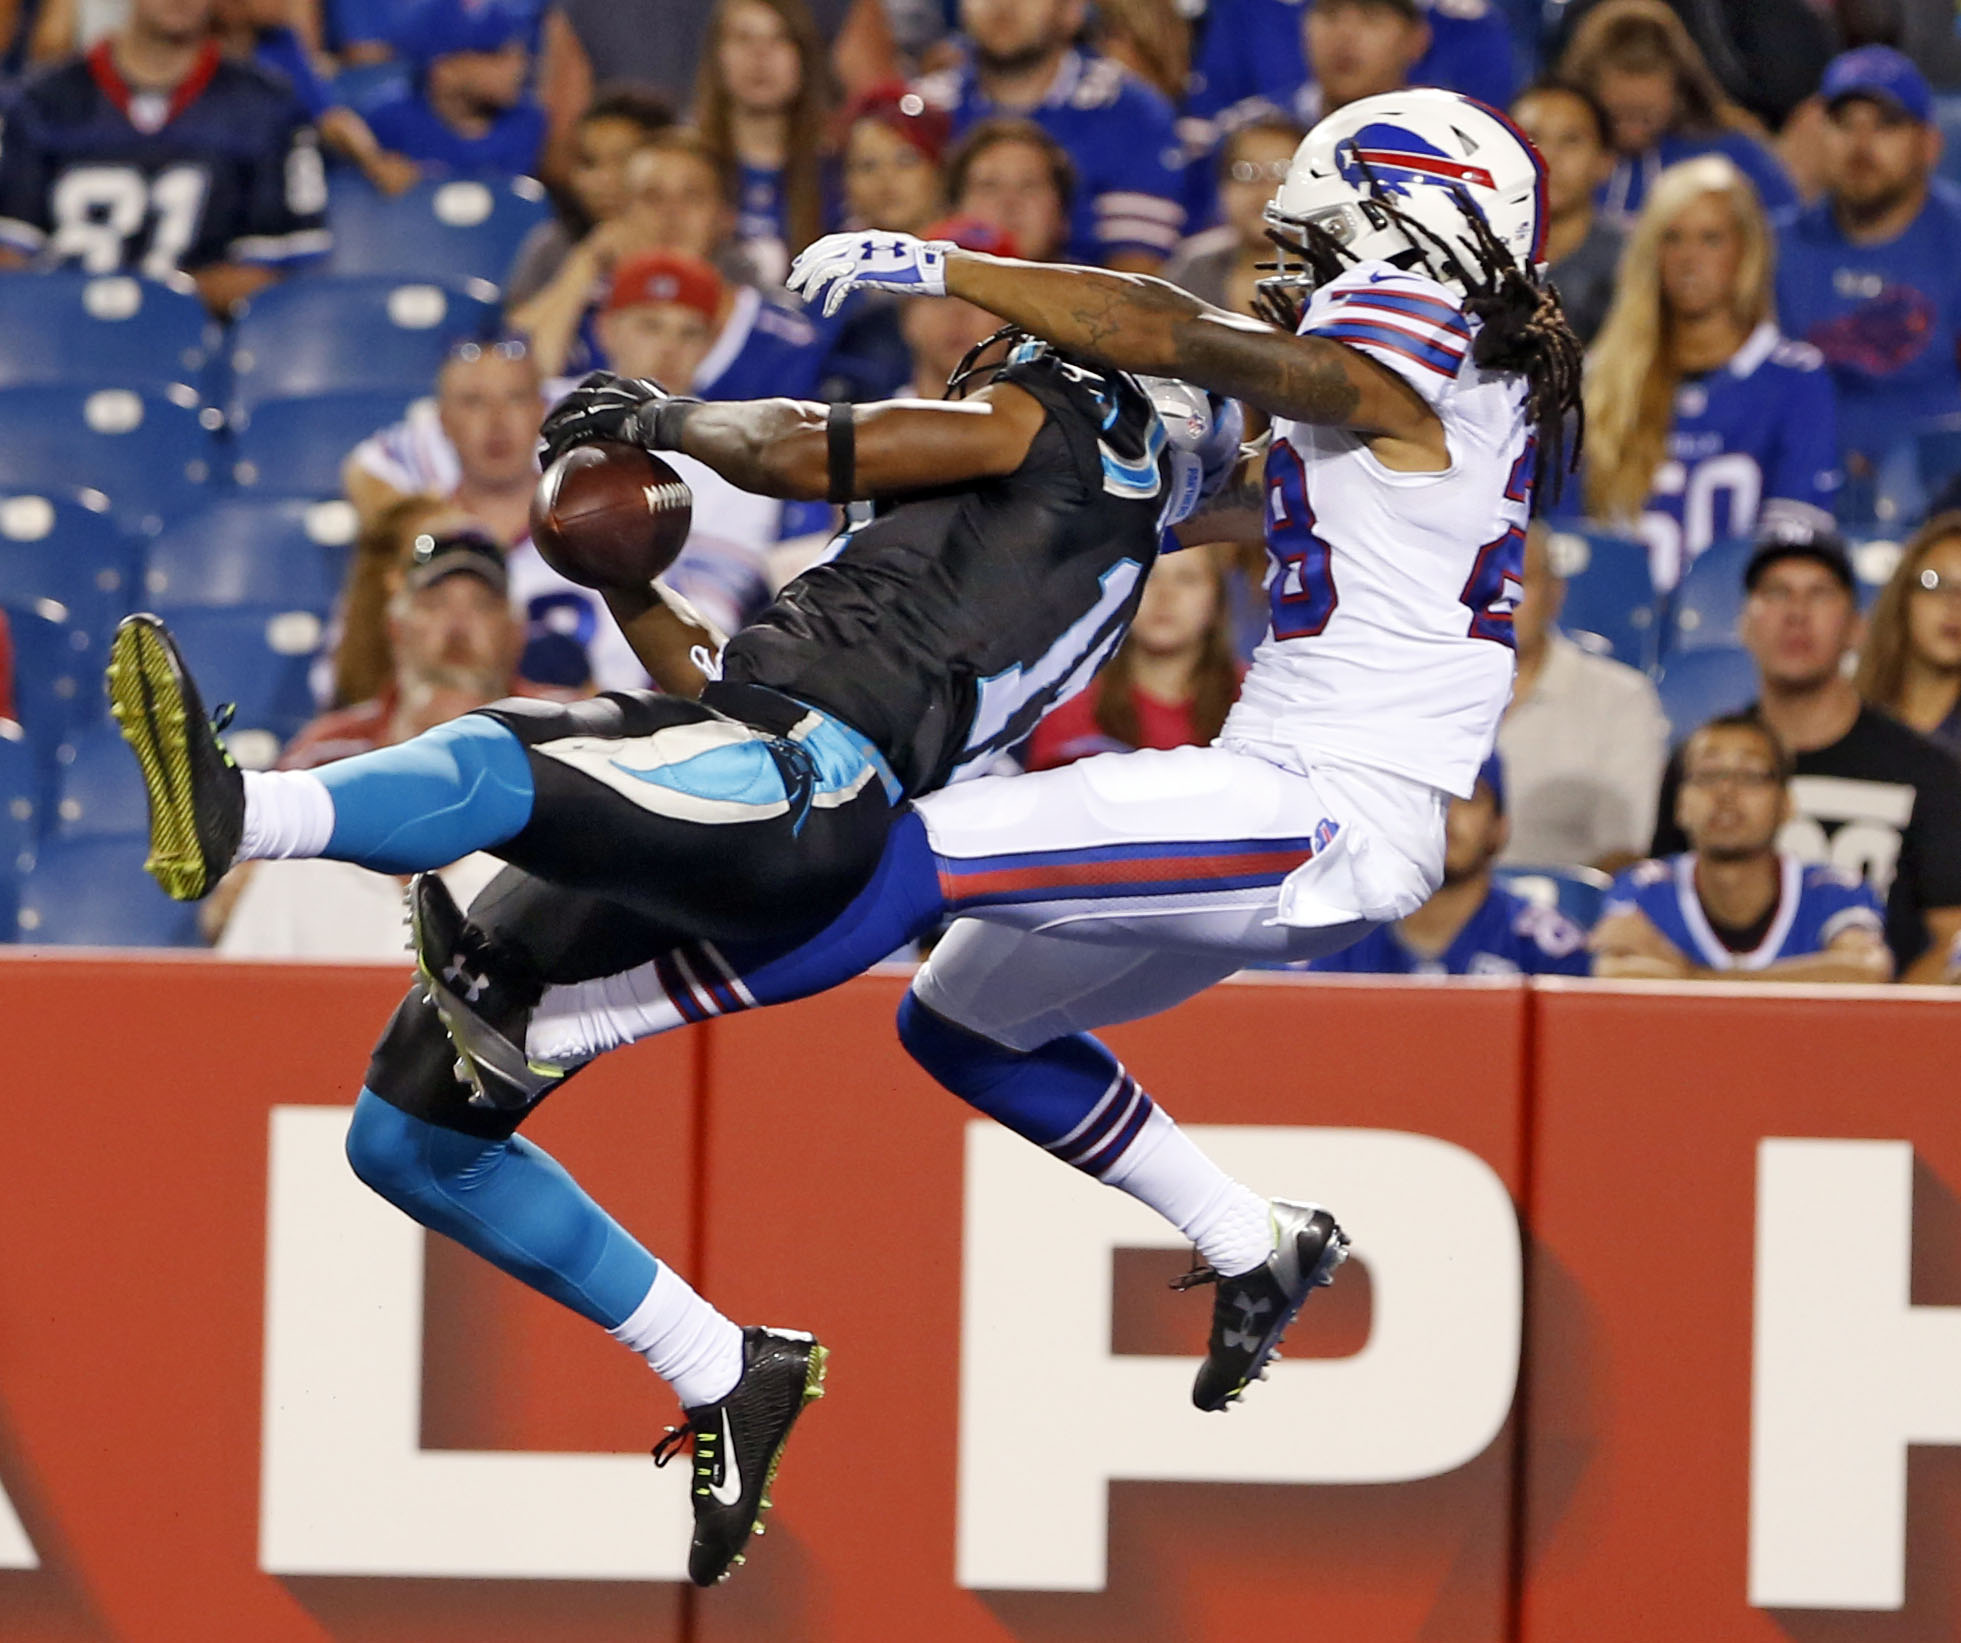 Buffalo Bills cornerback Ronald Darby, right, breaks up a pass intended for Carolina Panthers wide receiver Devin Funchess (17) during the second half of an NFL preseason football game on Friday, Aug. 14, 2015, in Orchard Park, N.Y. (AP Photo/Heather Ains